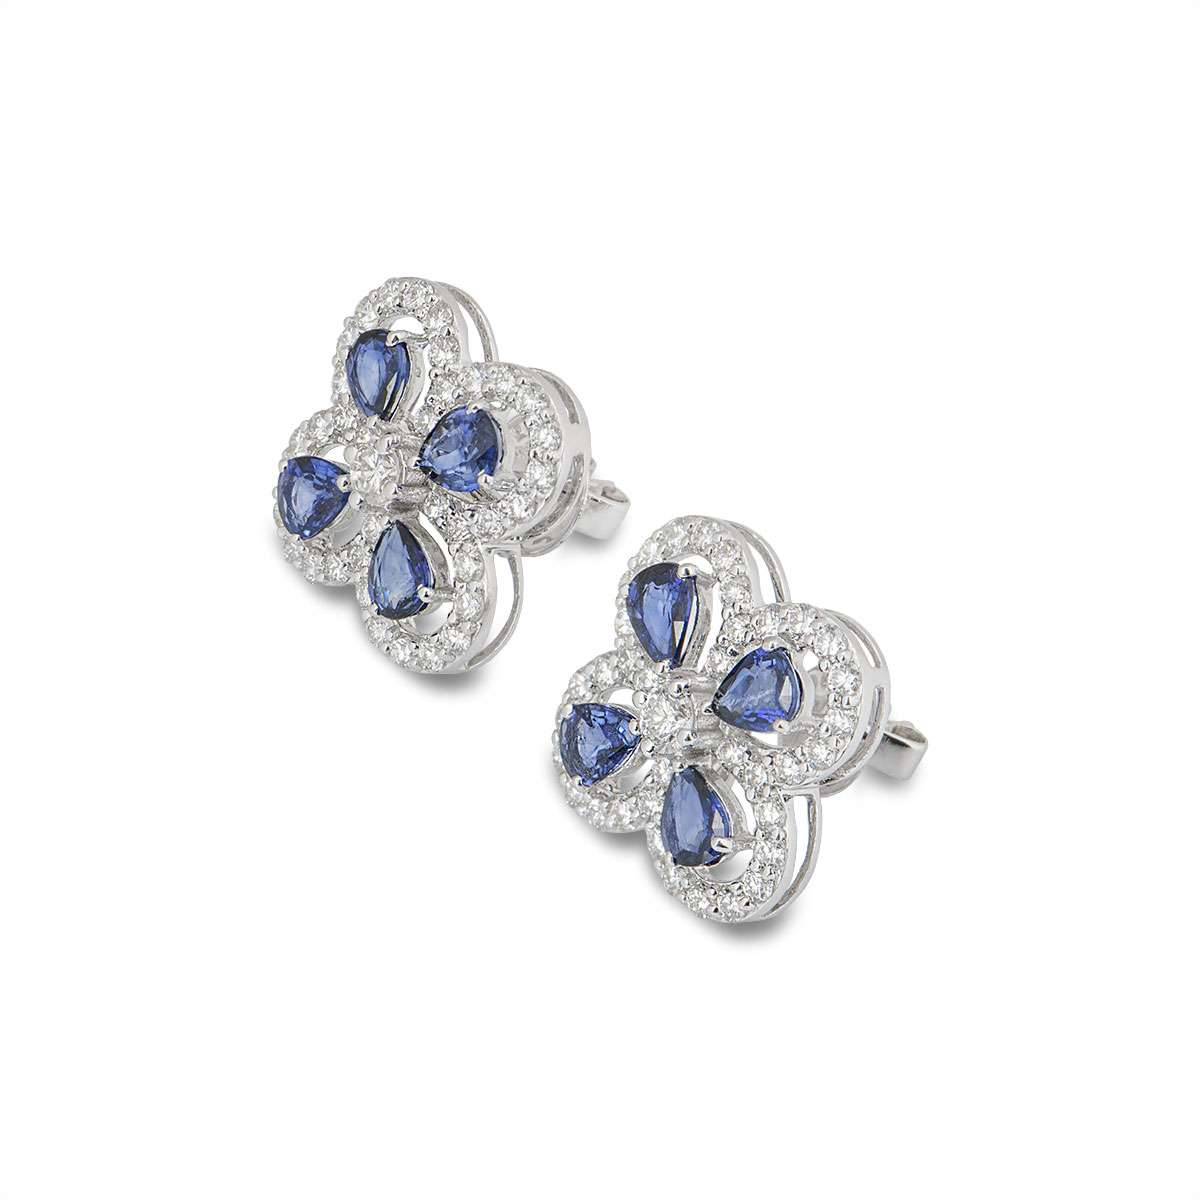 White Gold Sapphire and Diamond Earrings